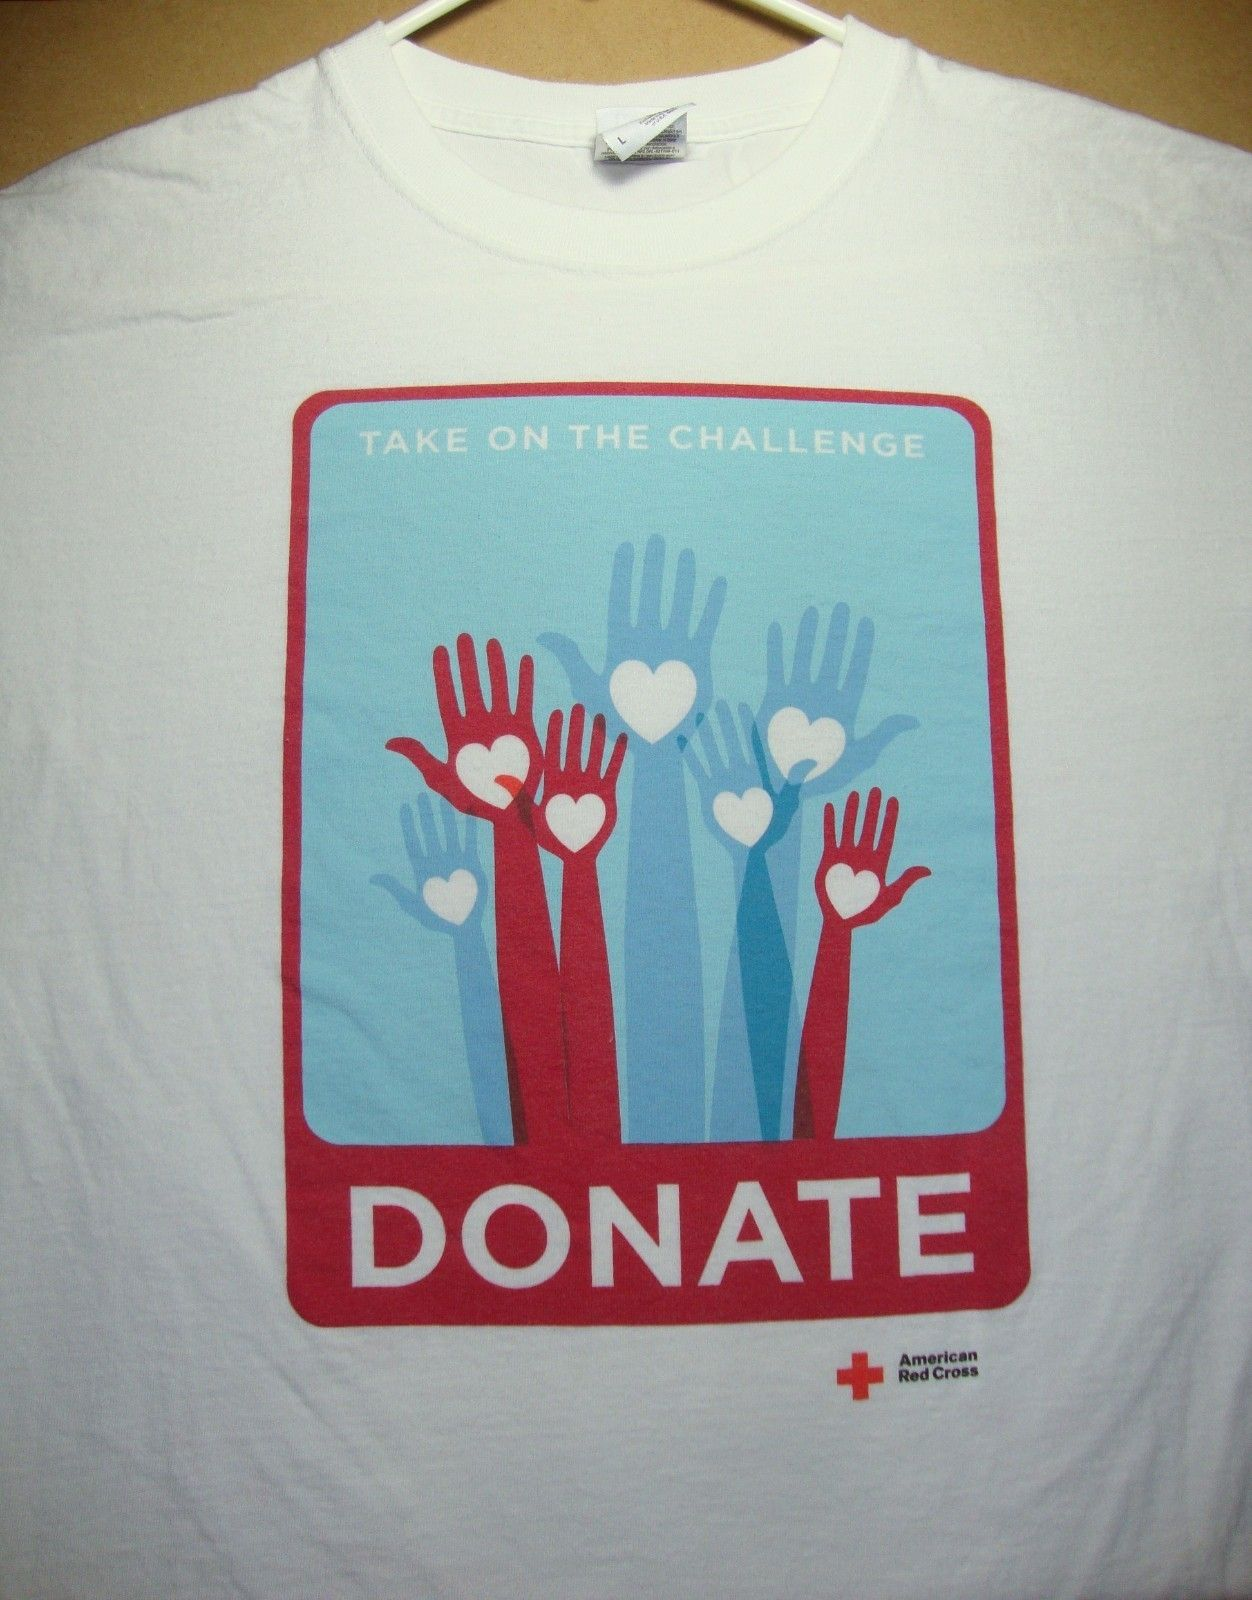 Pin on Be a hero - donate blood